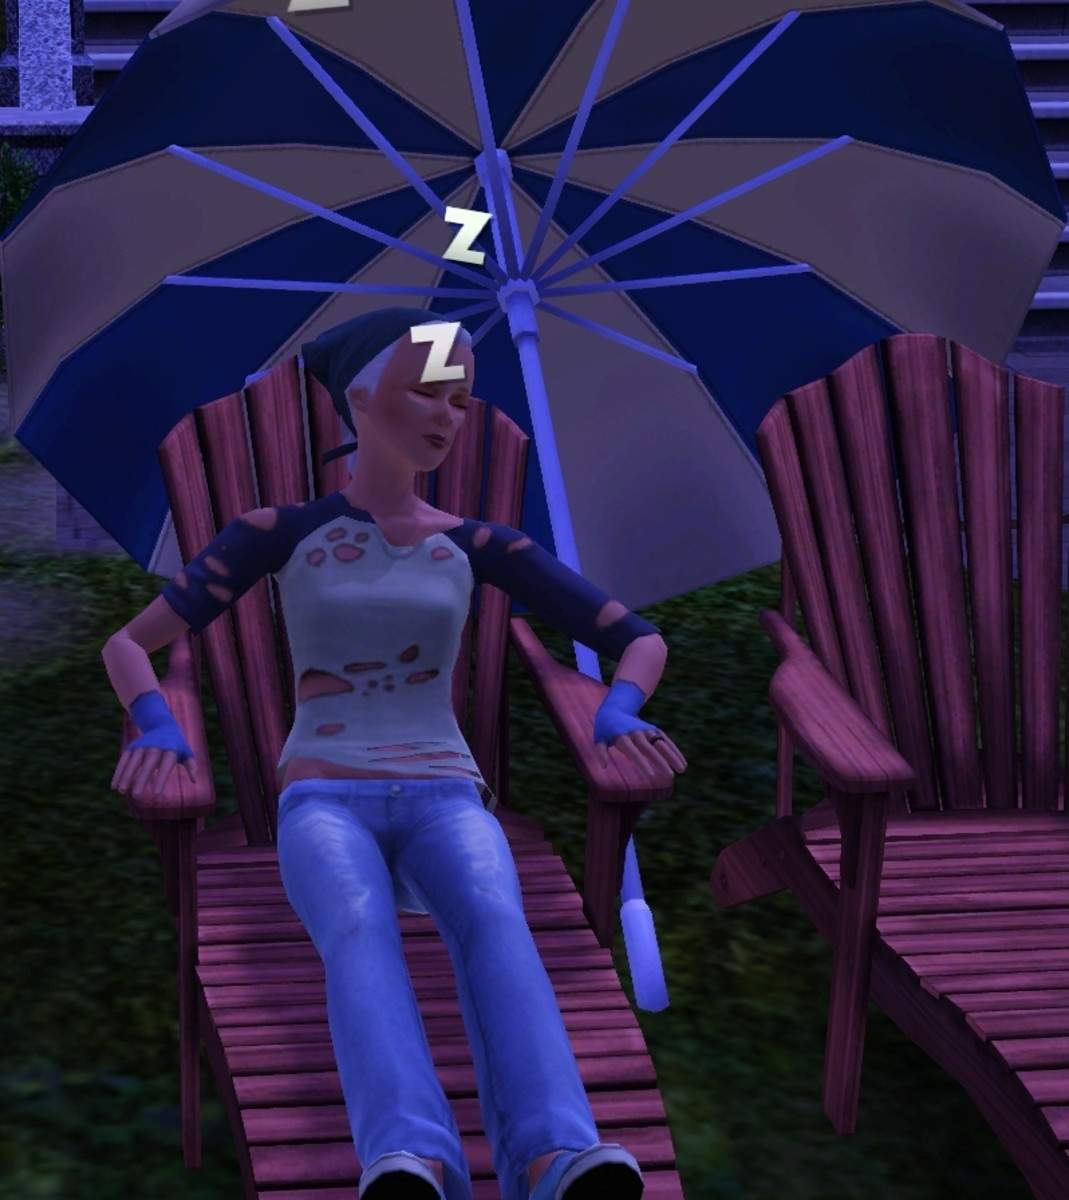 It may take a while, but you can nap your Sim's way to full rest.